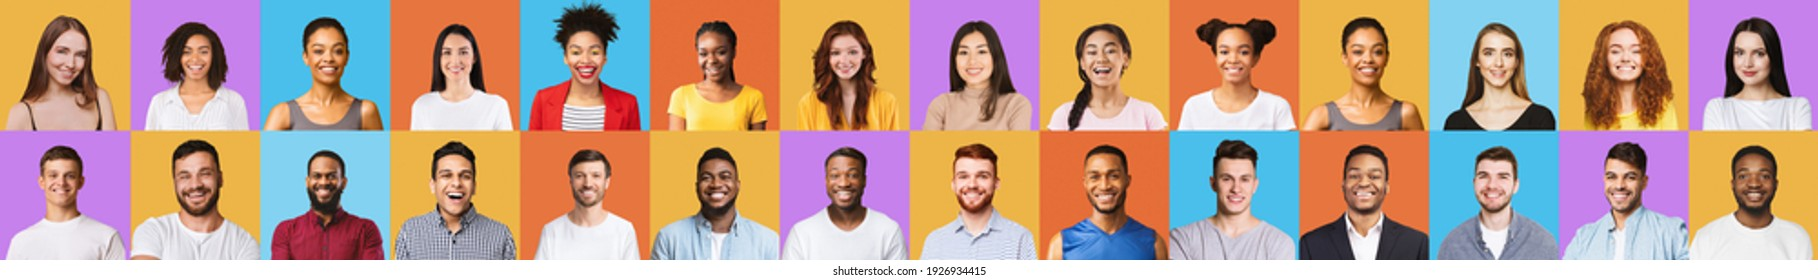 Cheerful Multiracial Millennials Portraits With Smiling Face Of Young People Posing Over Bright Colored Backgrounds. Different Happy Female And Male Faces, Headshots Collage. Panorama